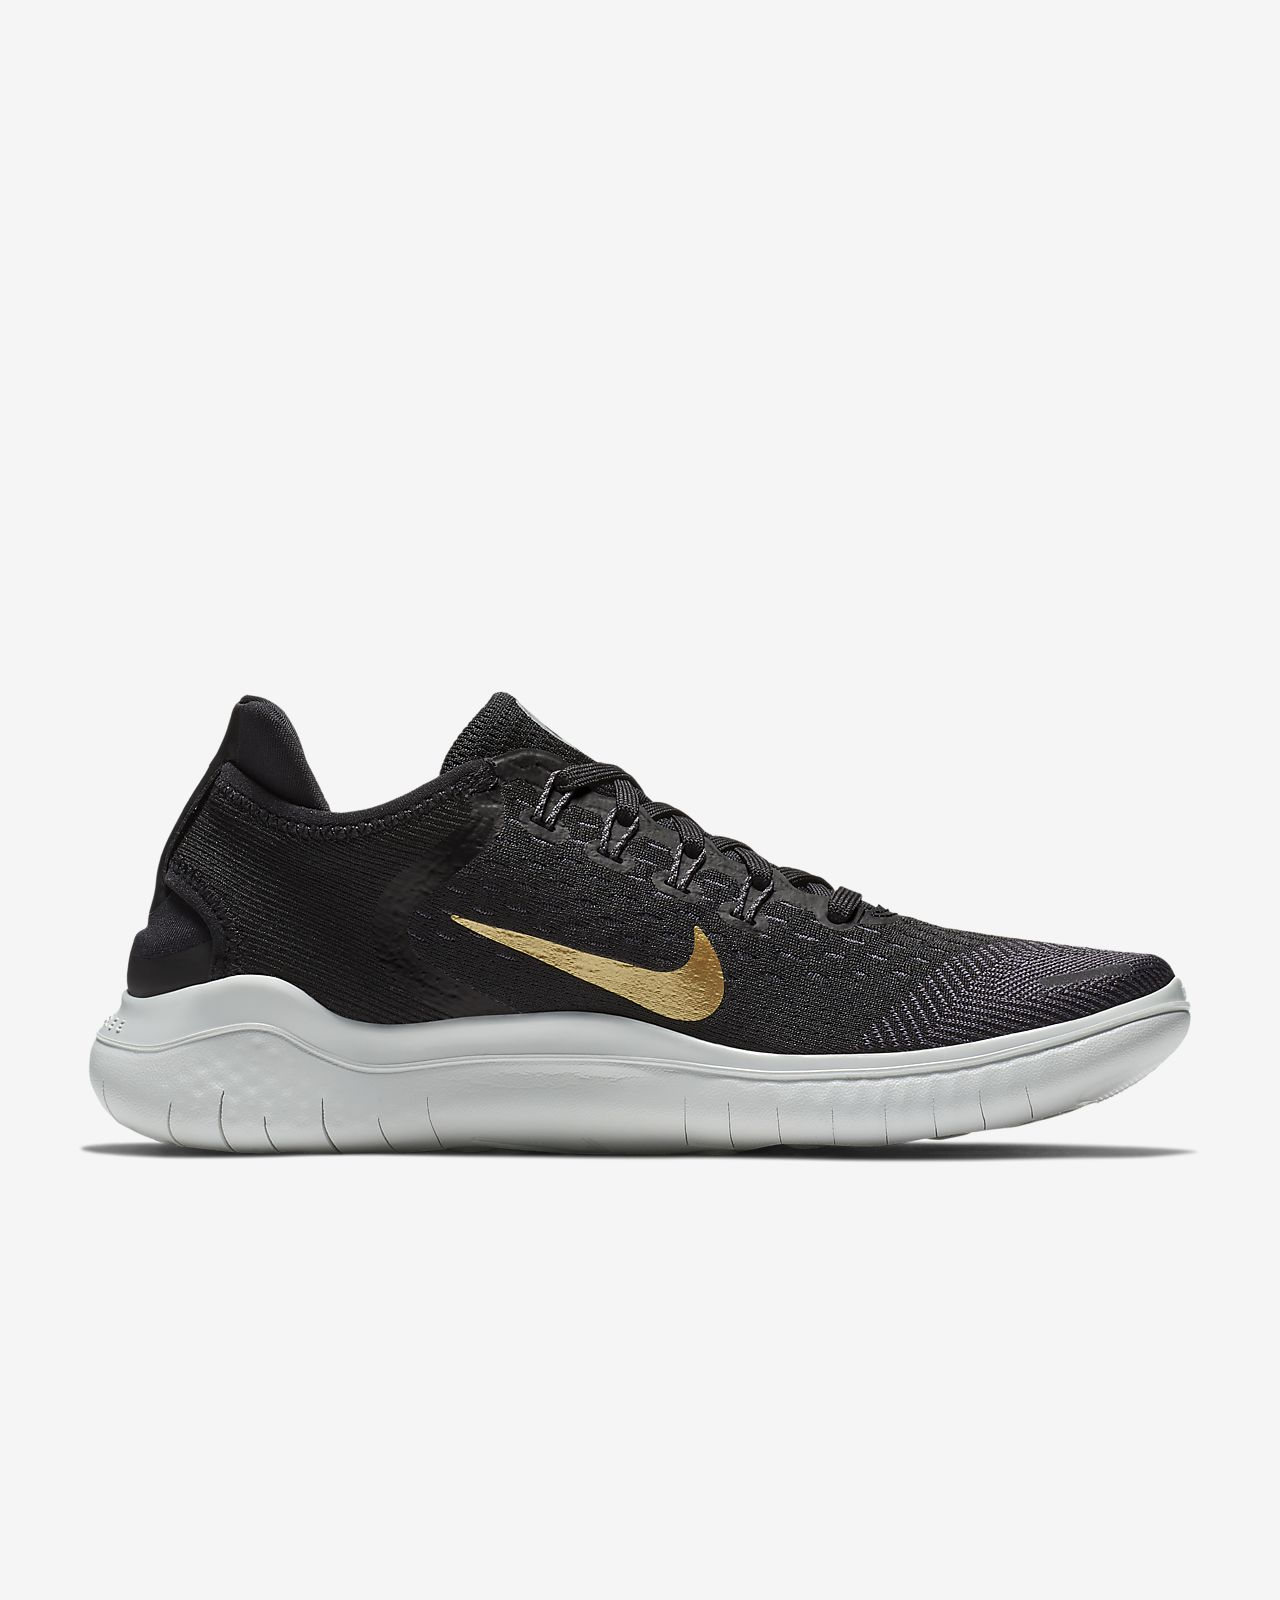 best loved 3f9f0 18eb8 ... Nike Free RN 2018 Women s Running Shoe